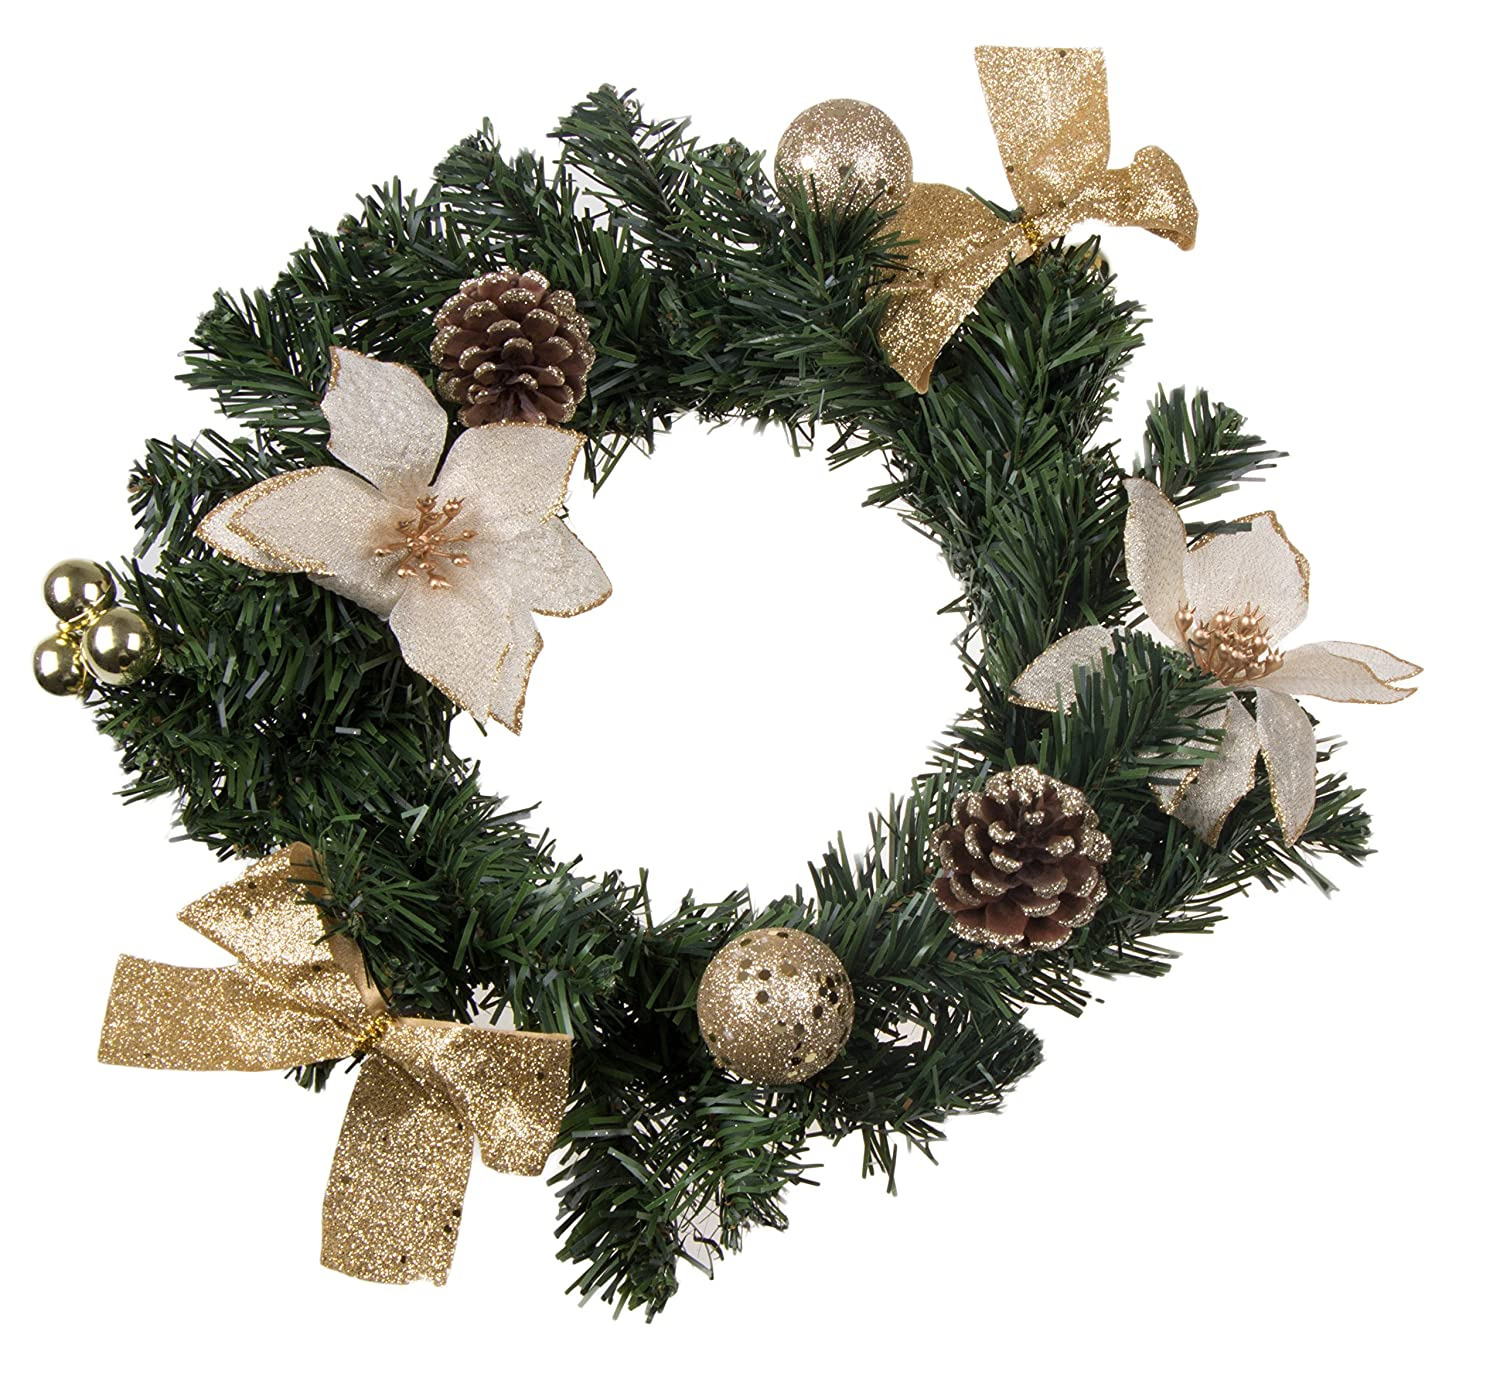 Amazoncom Christmas Wreath With White Poinsettia, Snow Covered Pine Cones,